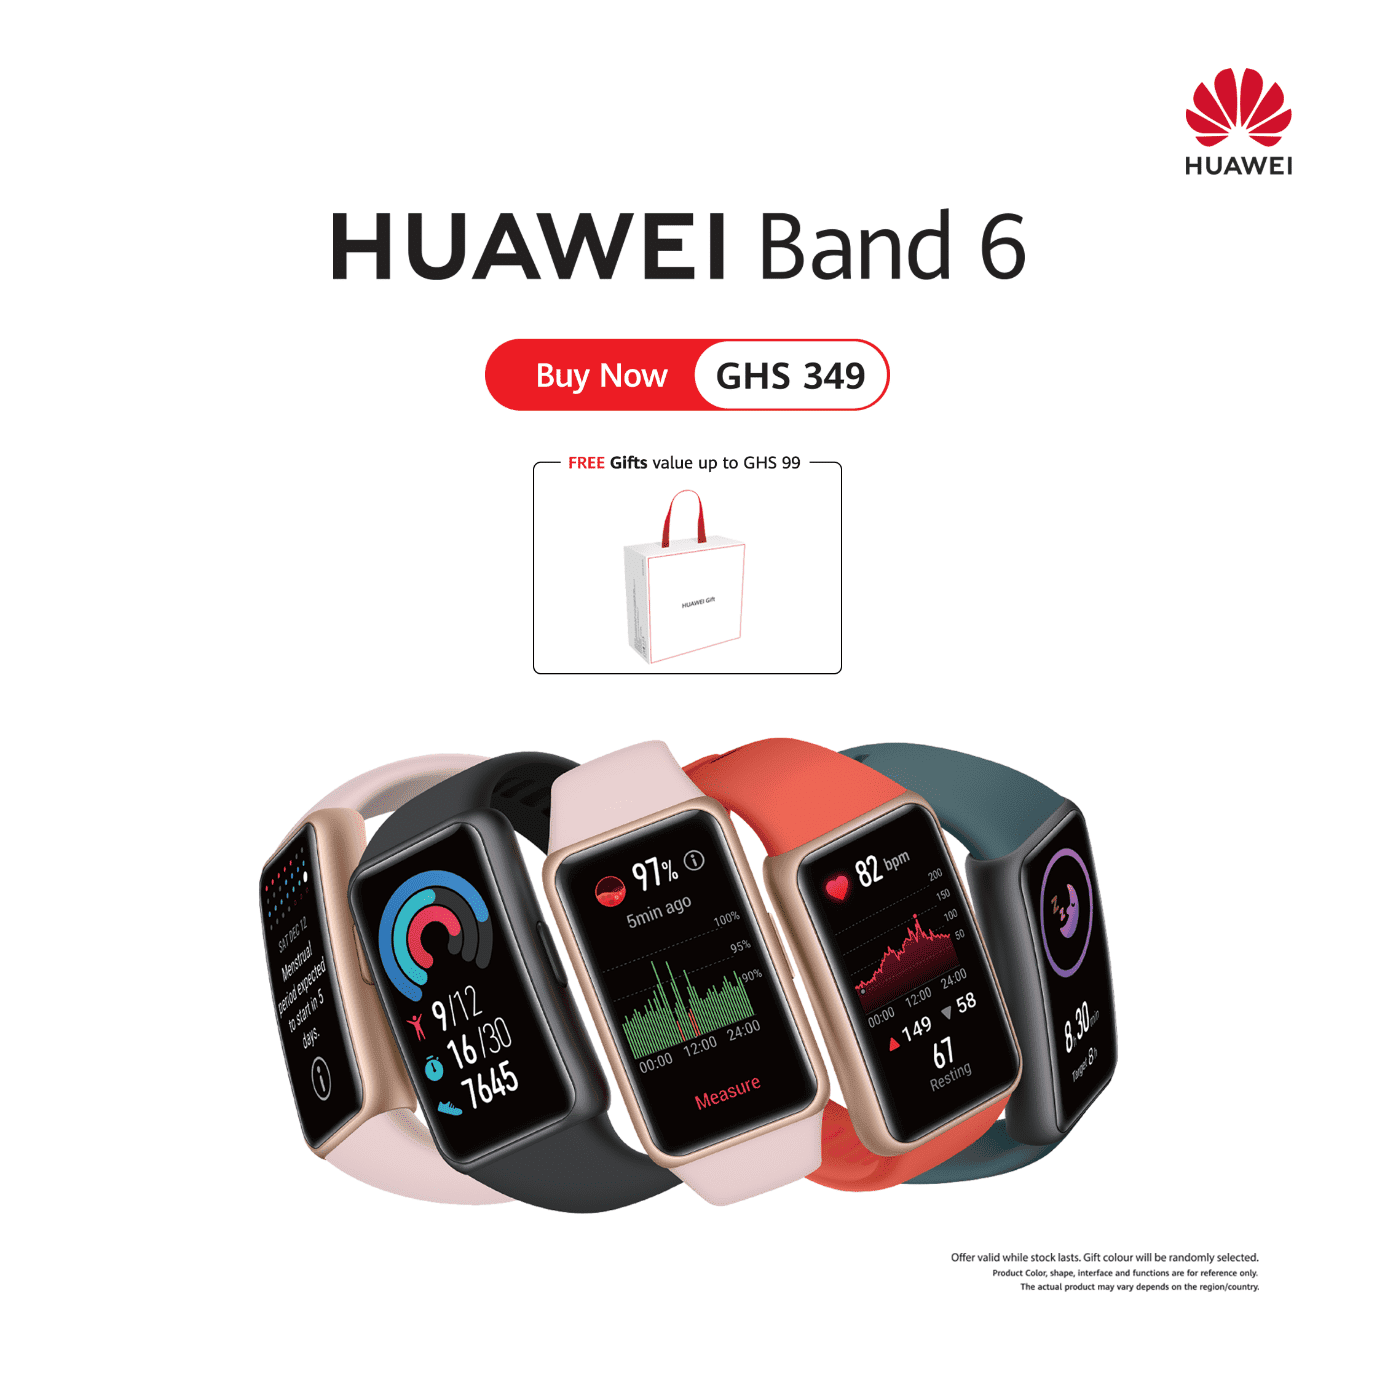 Huawei's all new smart band, Huawei Band 6 brings together Key smartwatch features and doesn't break the bank!